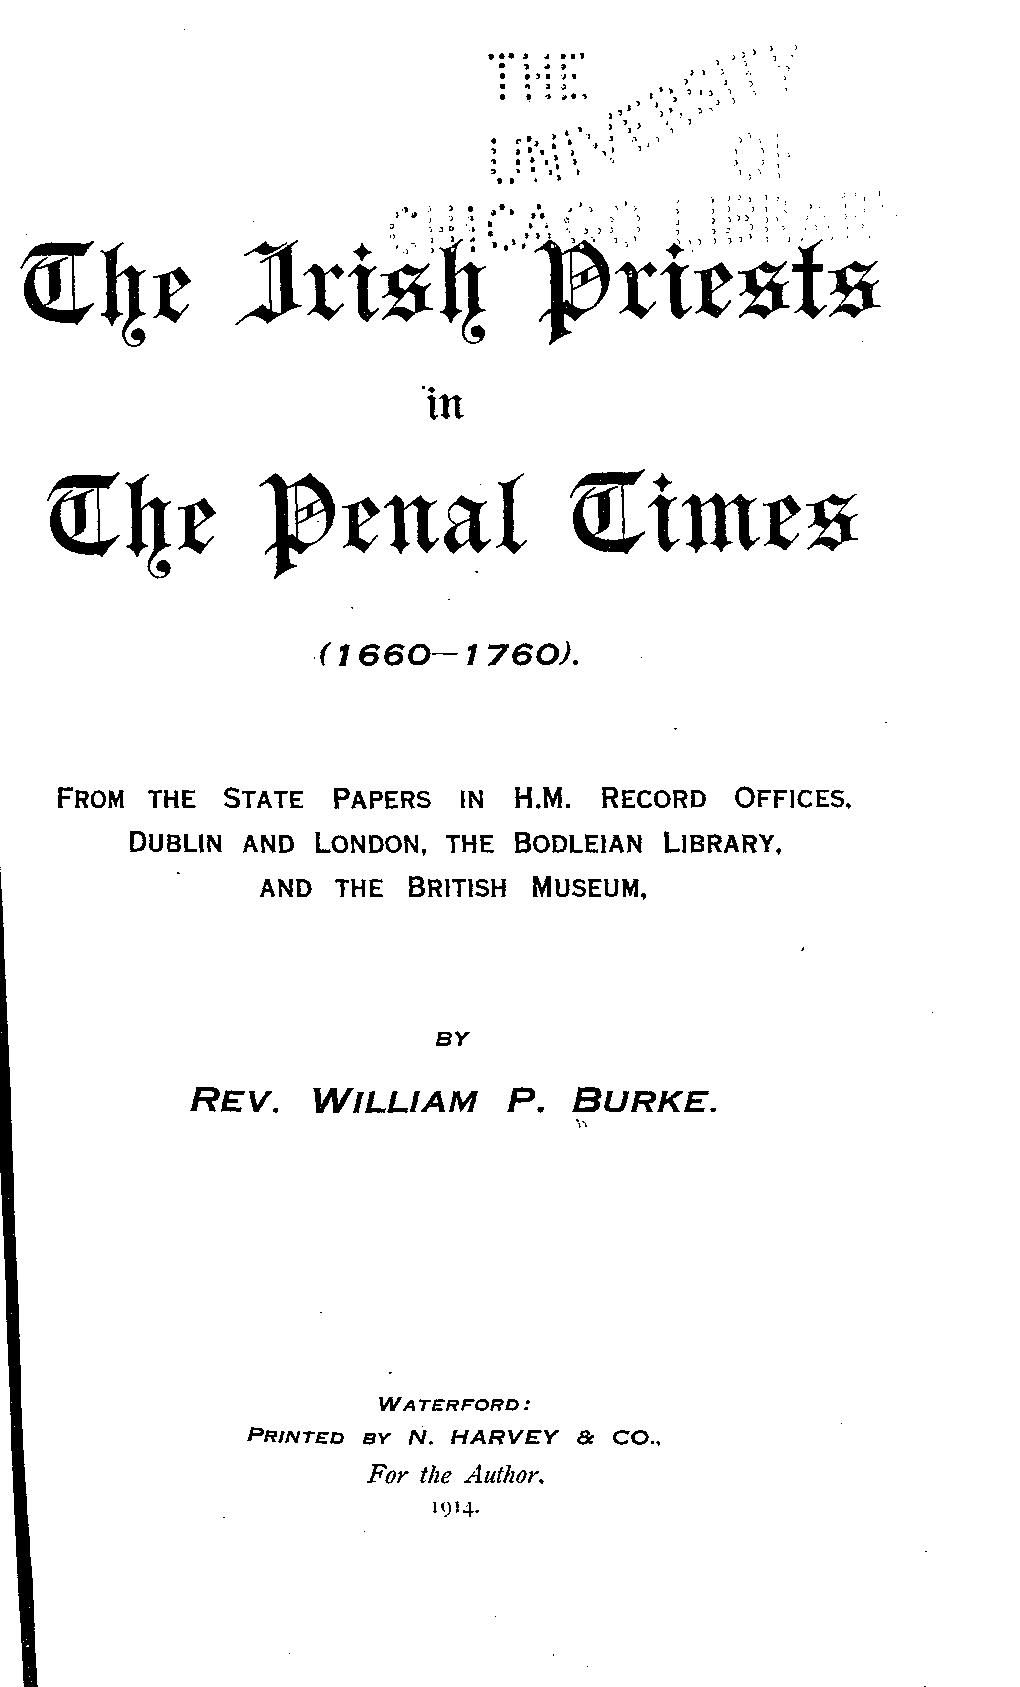 The Irish priests in the penal times (1660-1760...